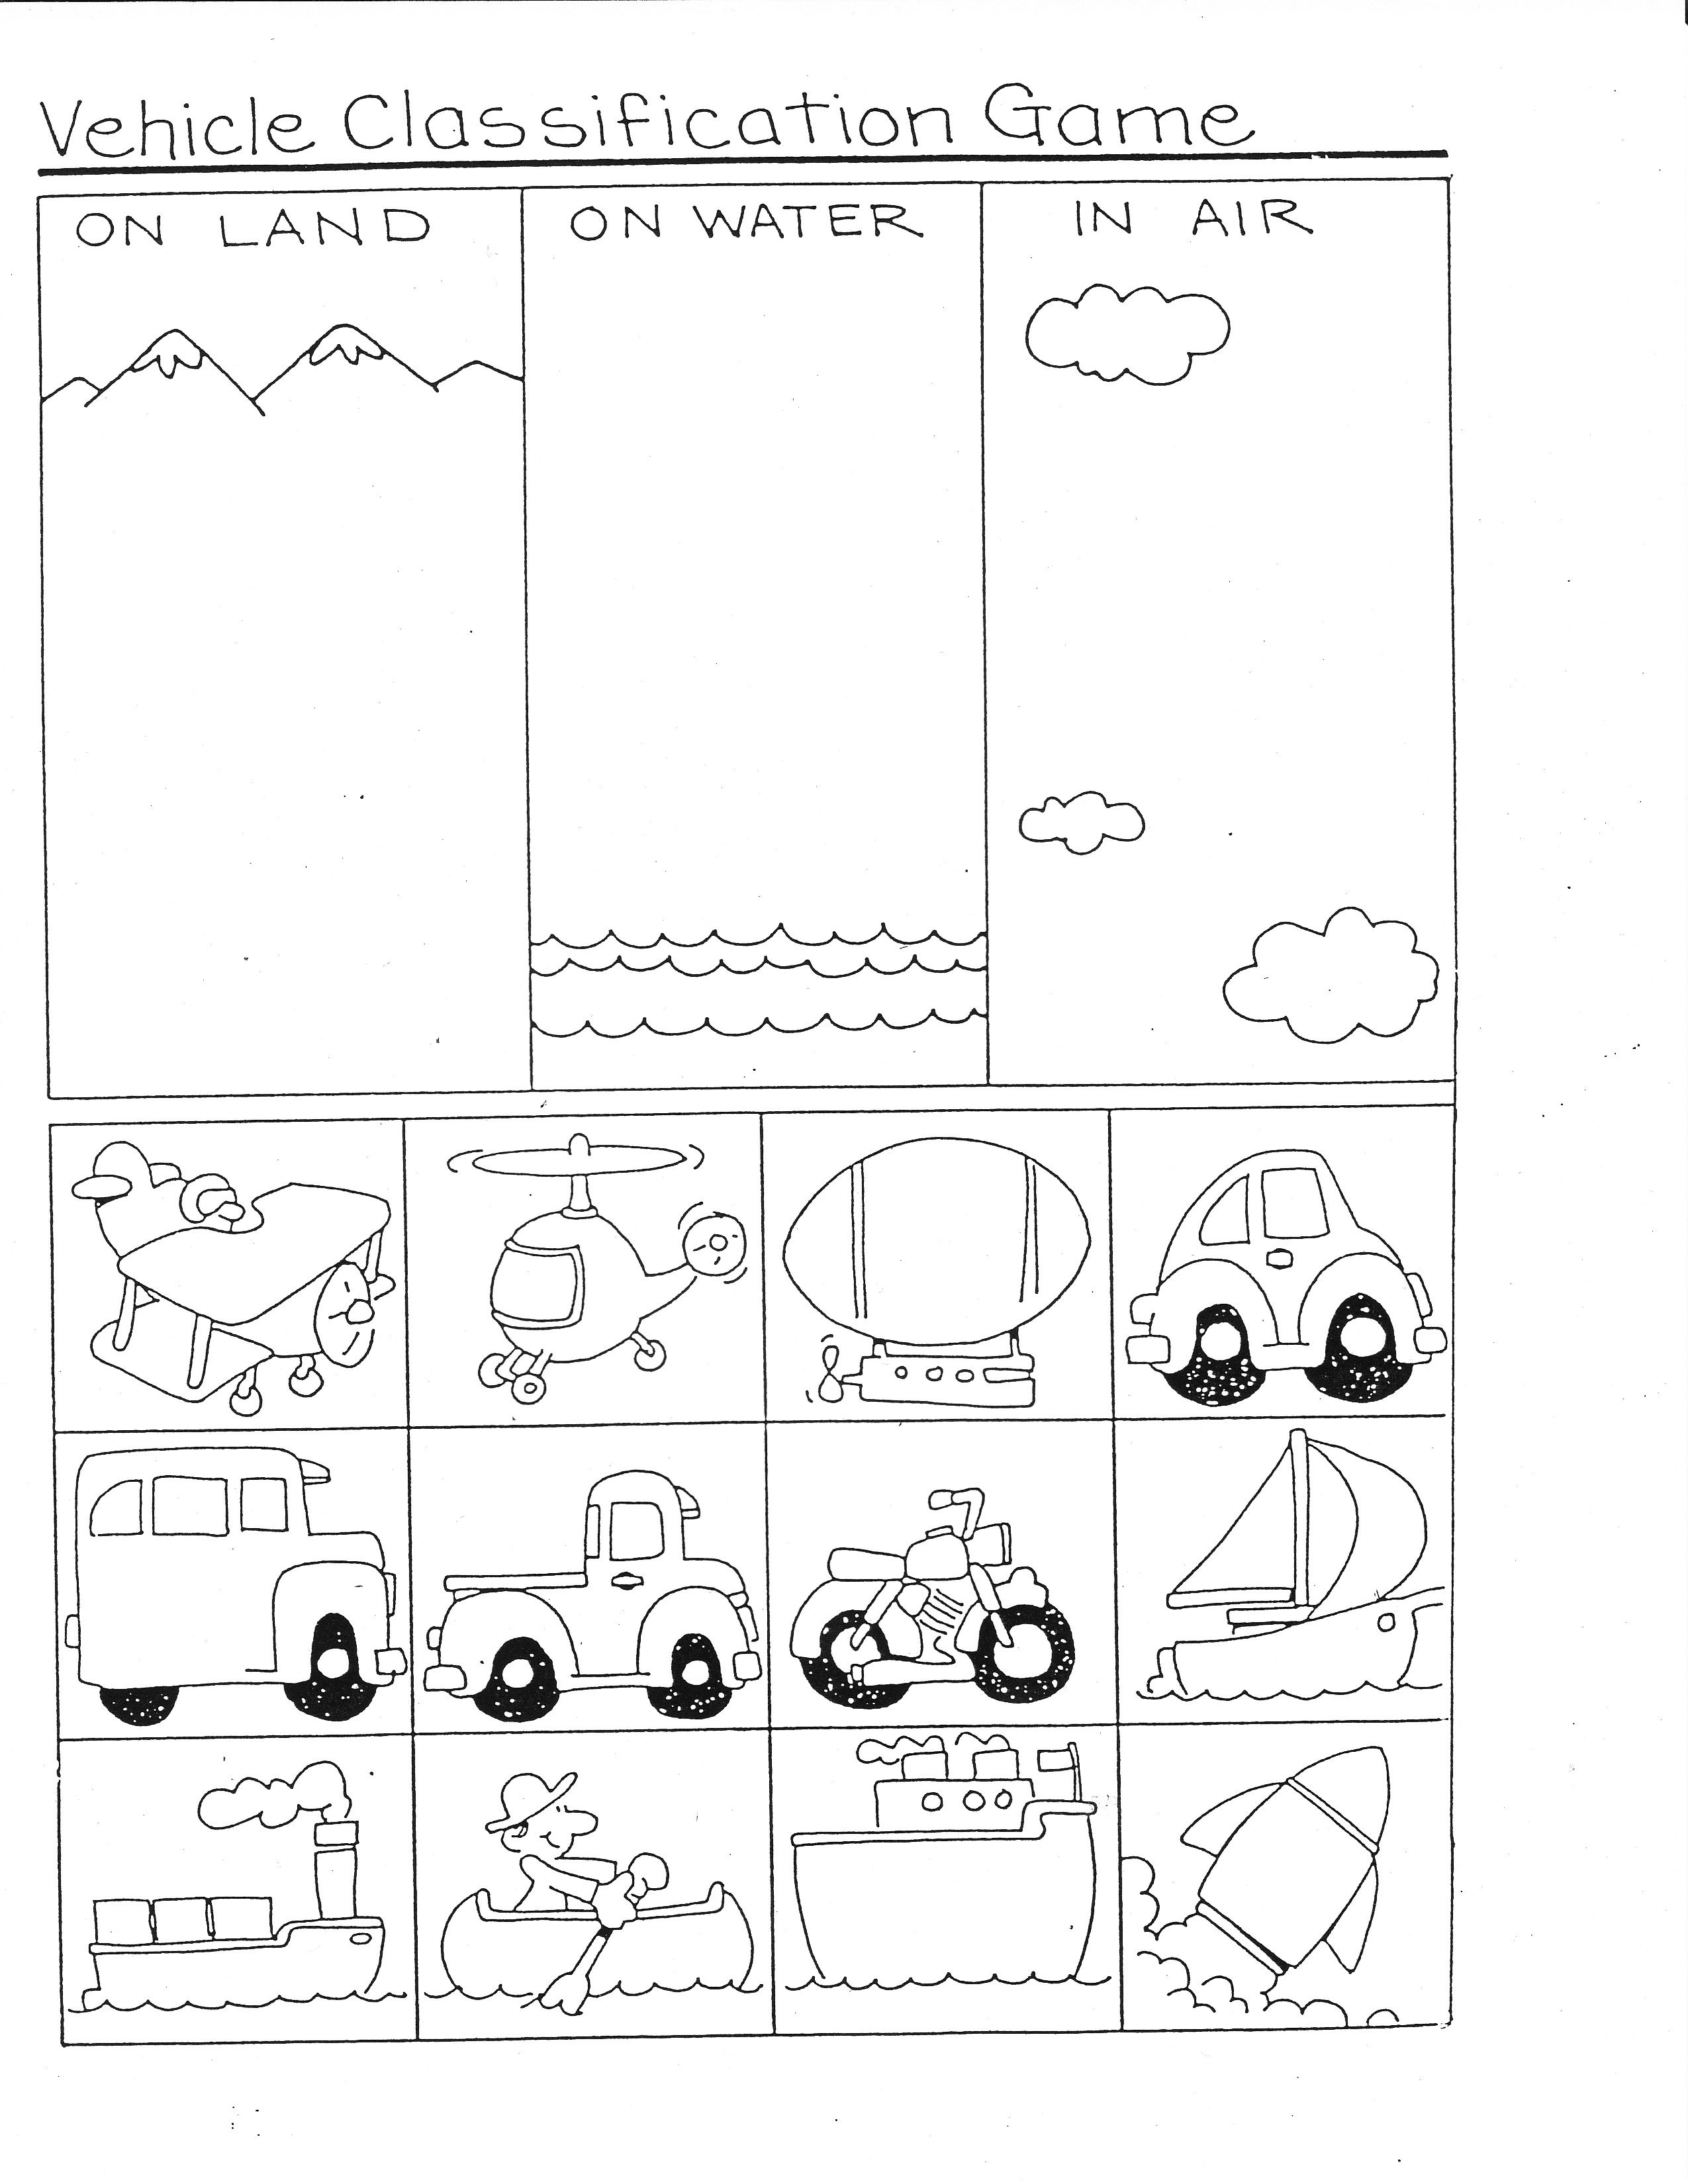 Transportation Ideas For Math | Ideas For School | Transportation | Free Printable Transportation Worksheets For Kids